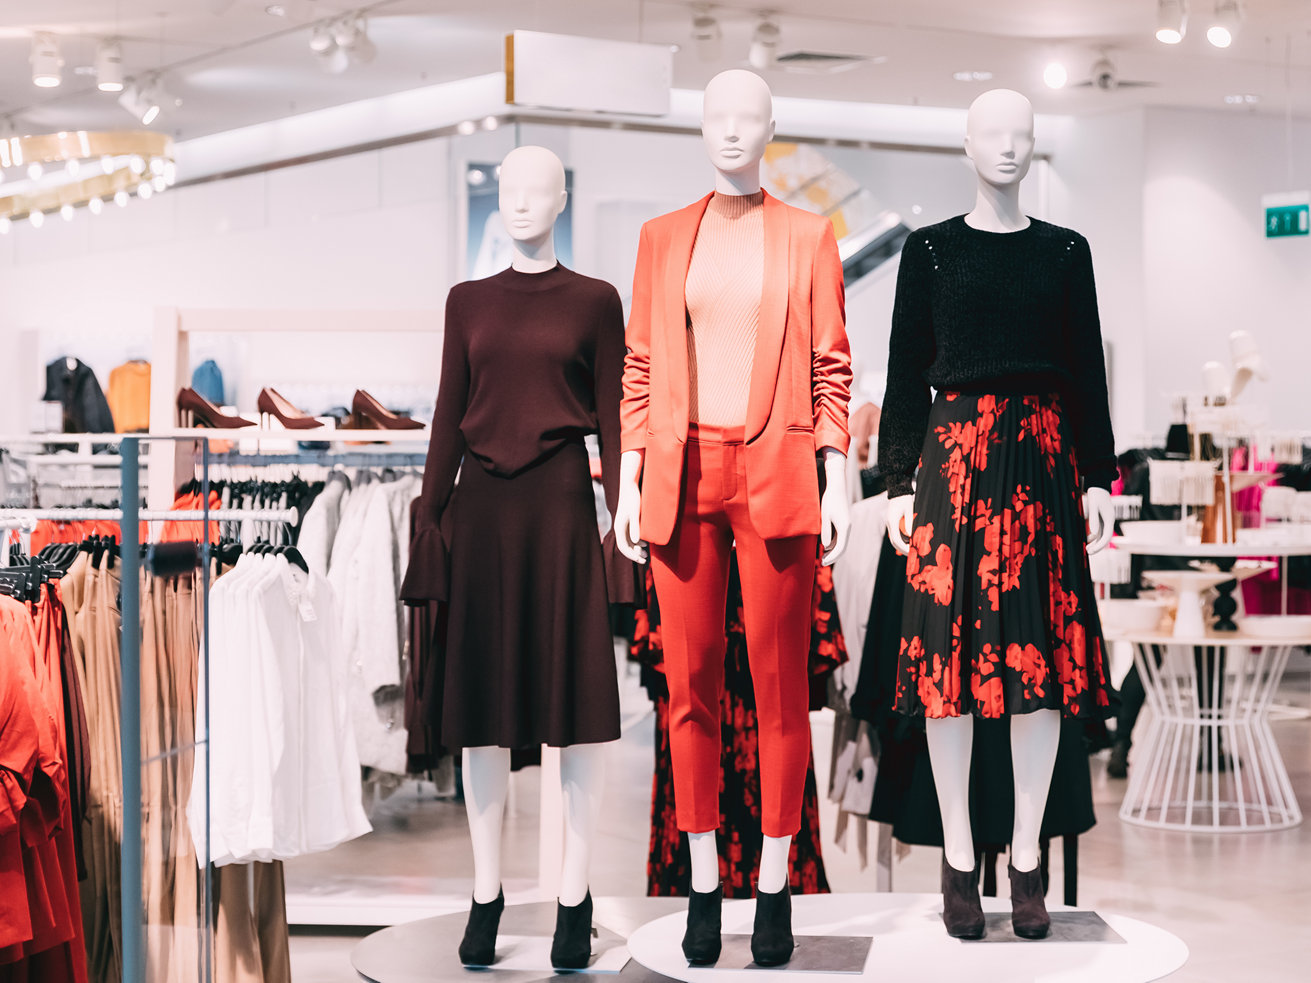 Mannequins displaying womens clothing in bright store